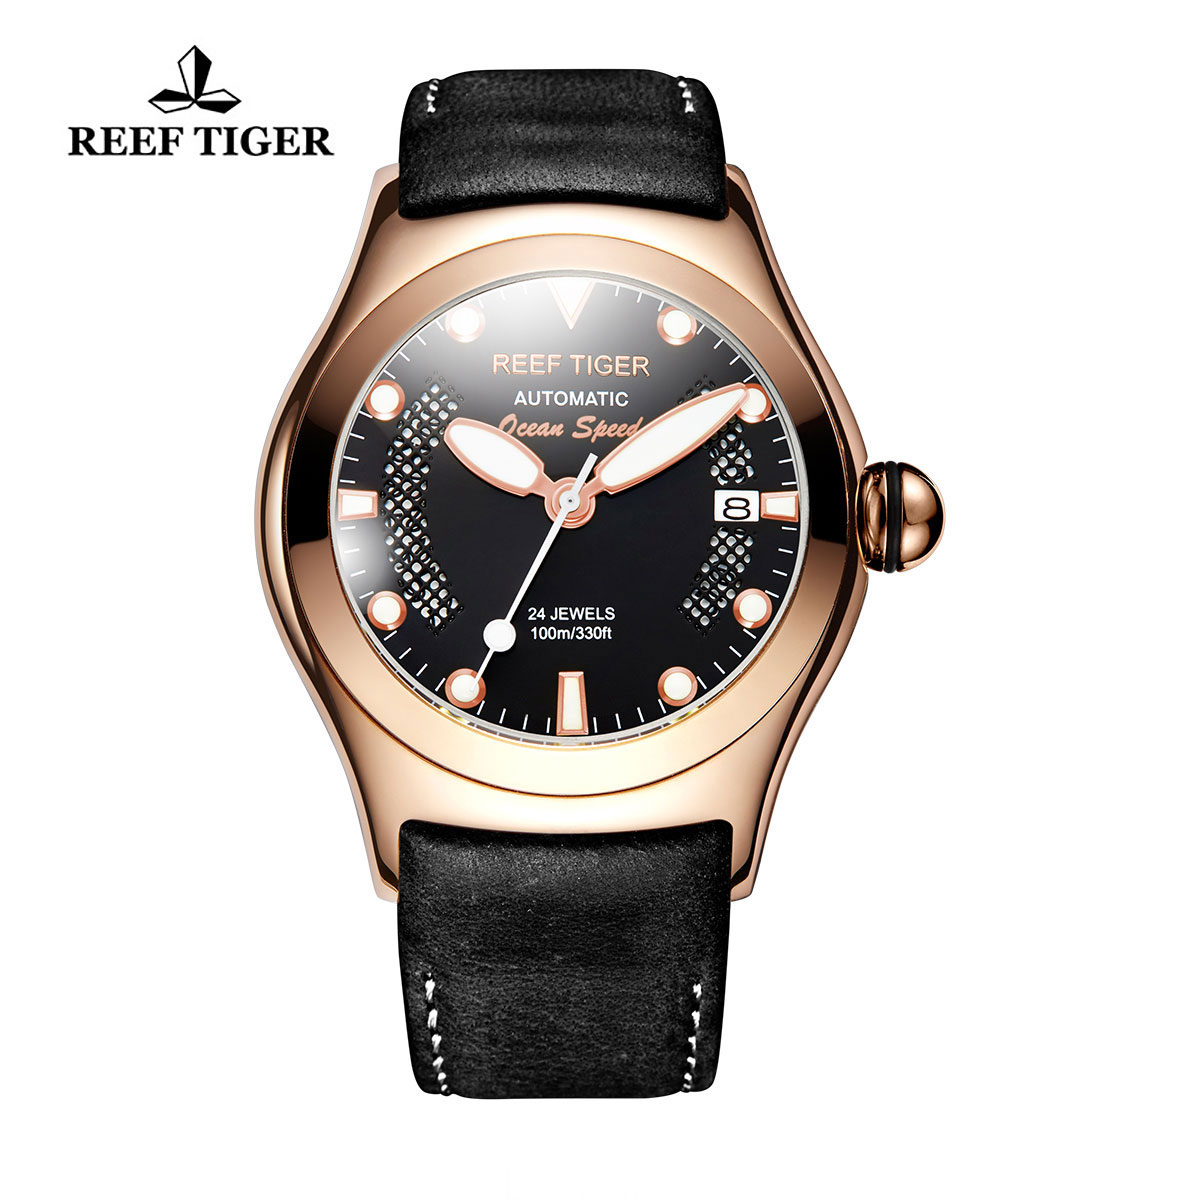 Reef Tiger Ocean Speed Sport Watches Automatic Rose Gold Case Leather Strap Black Dial Watch RGA704-PBBP